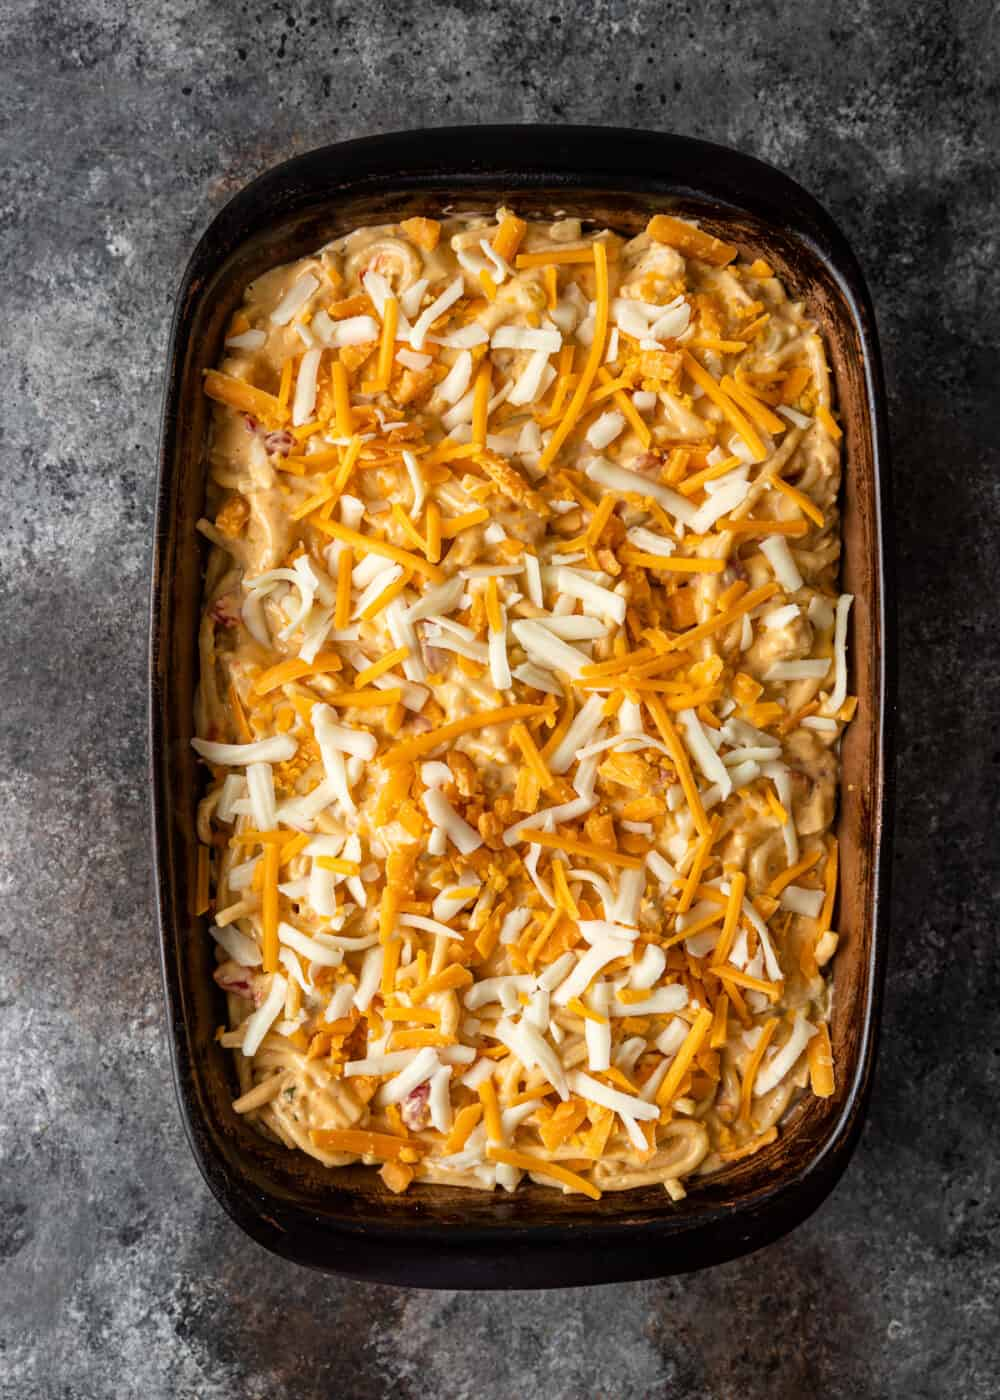 shredded white and yellow cheeses on top of casserole